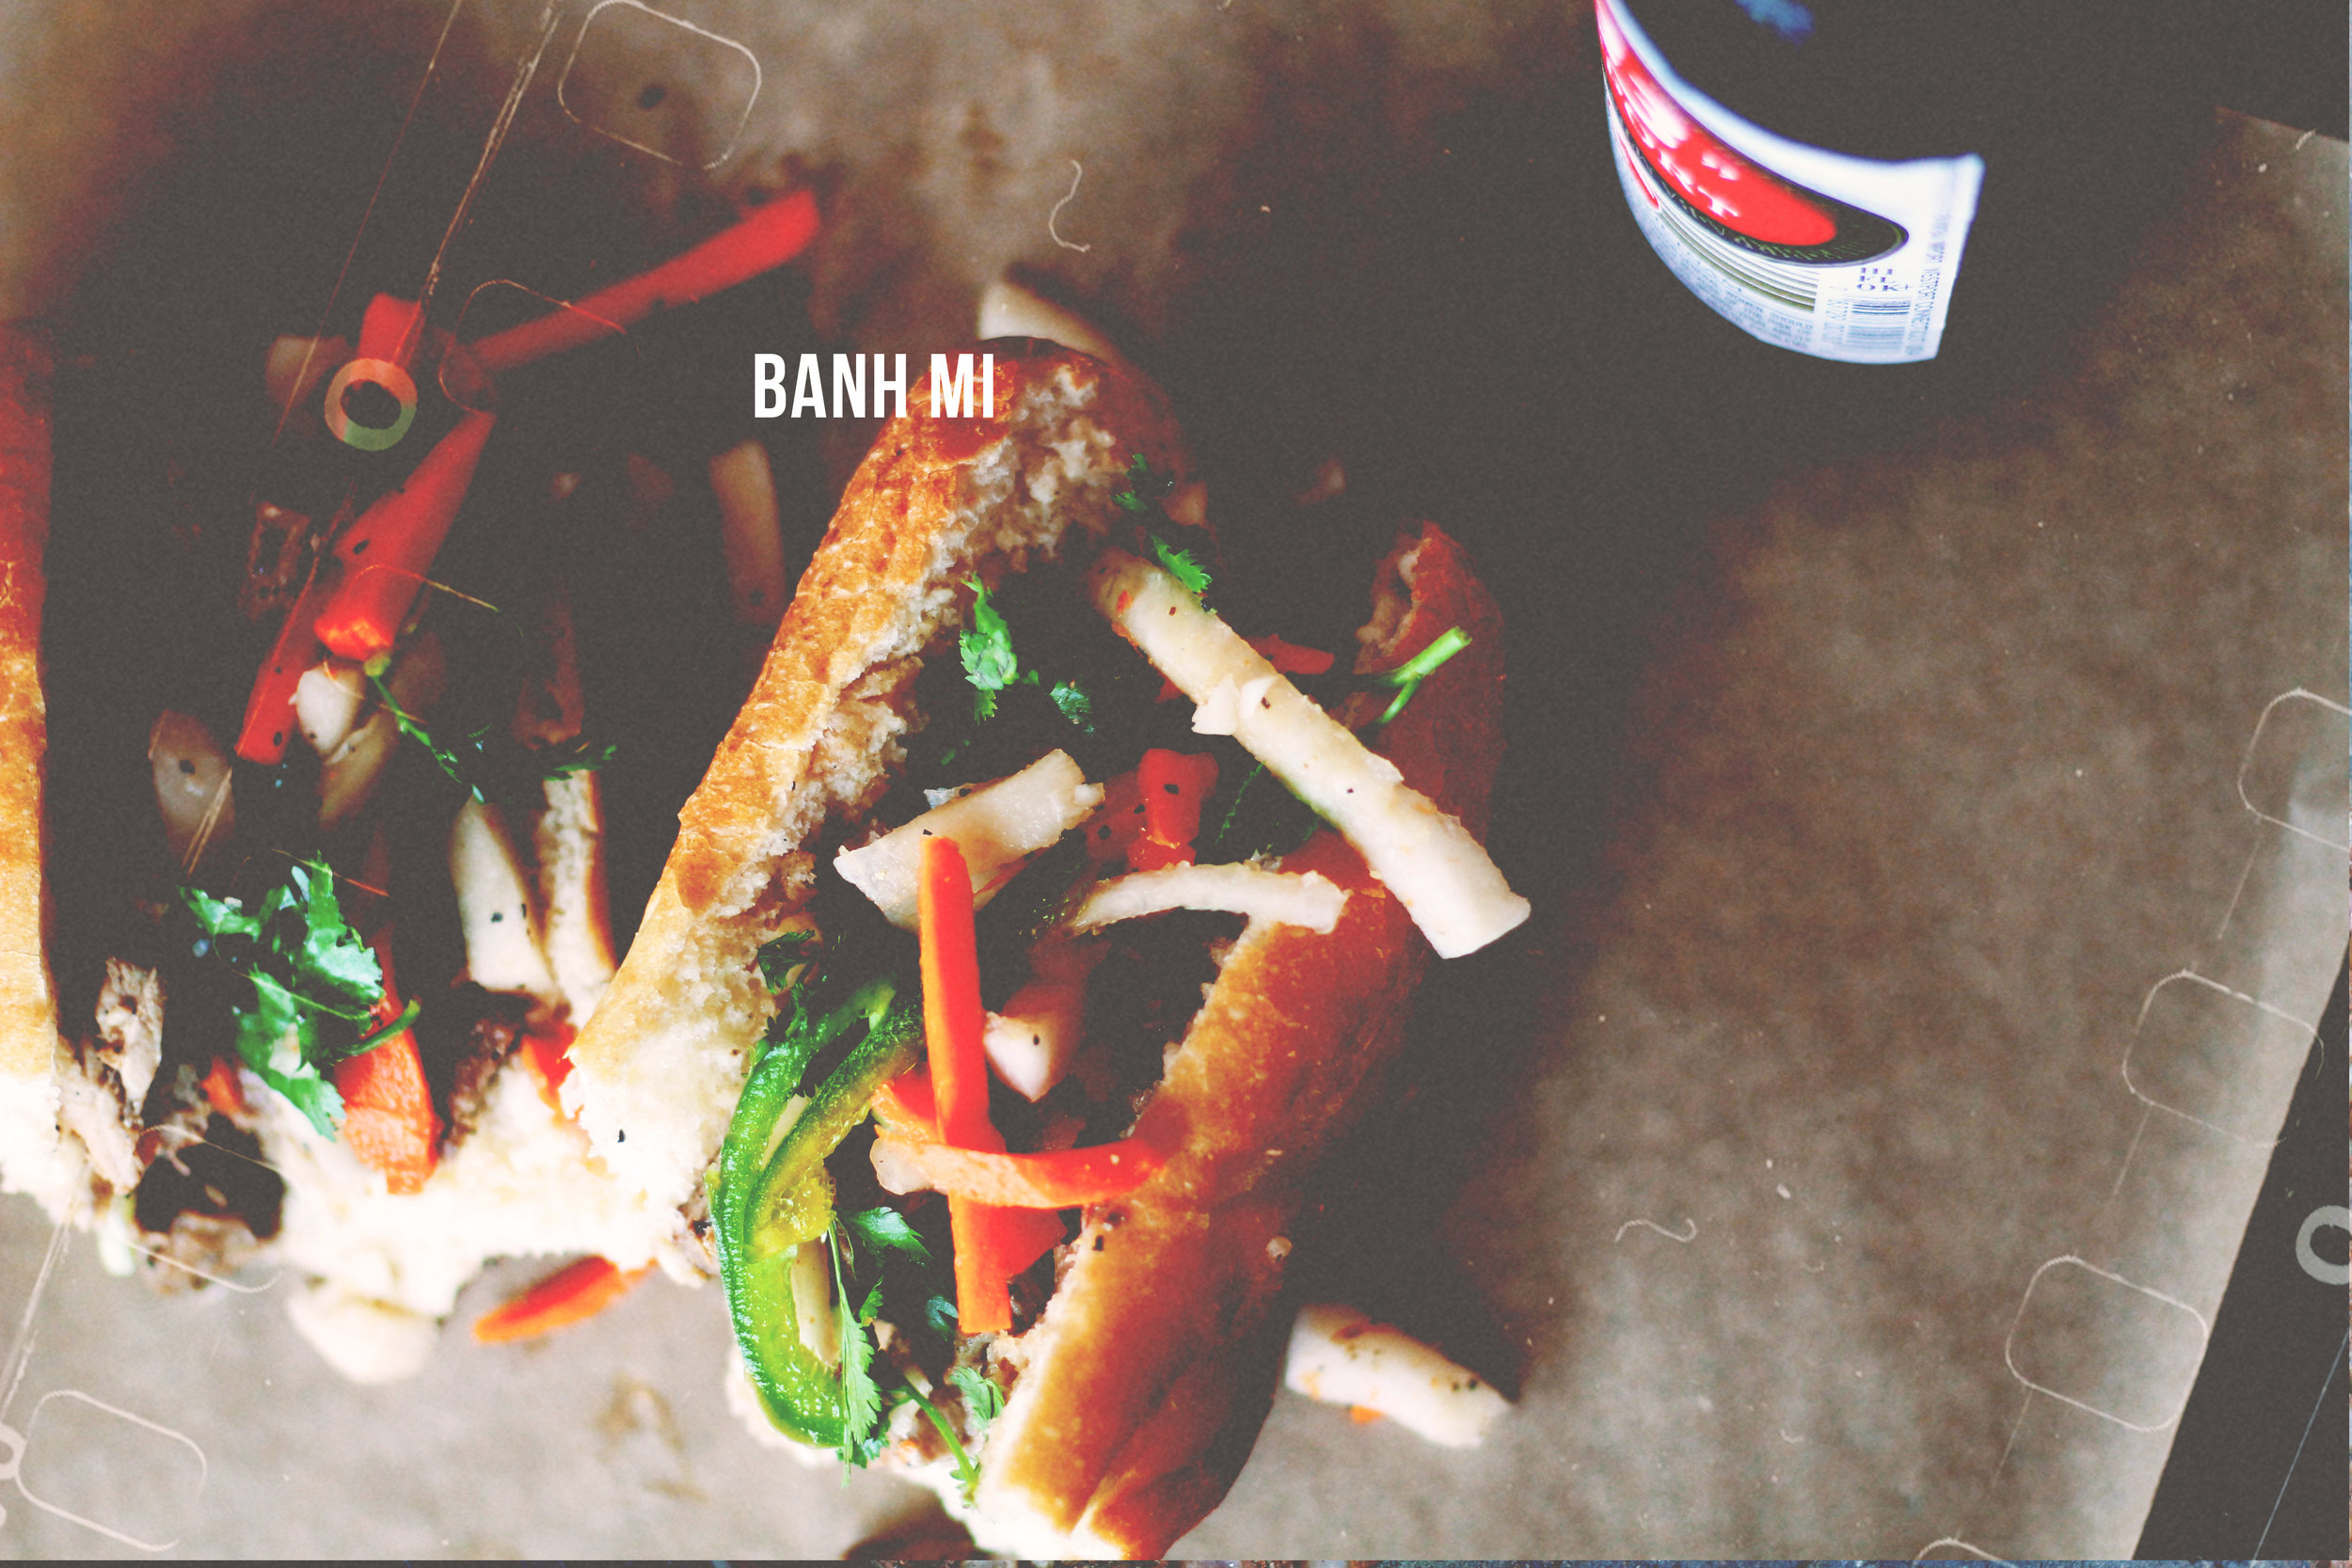 banh mi & beers, yes please.